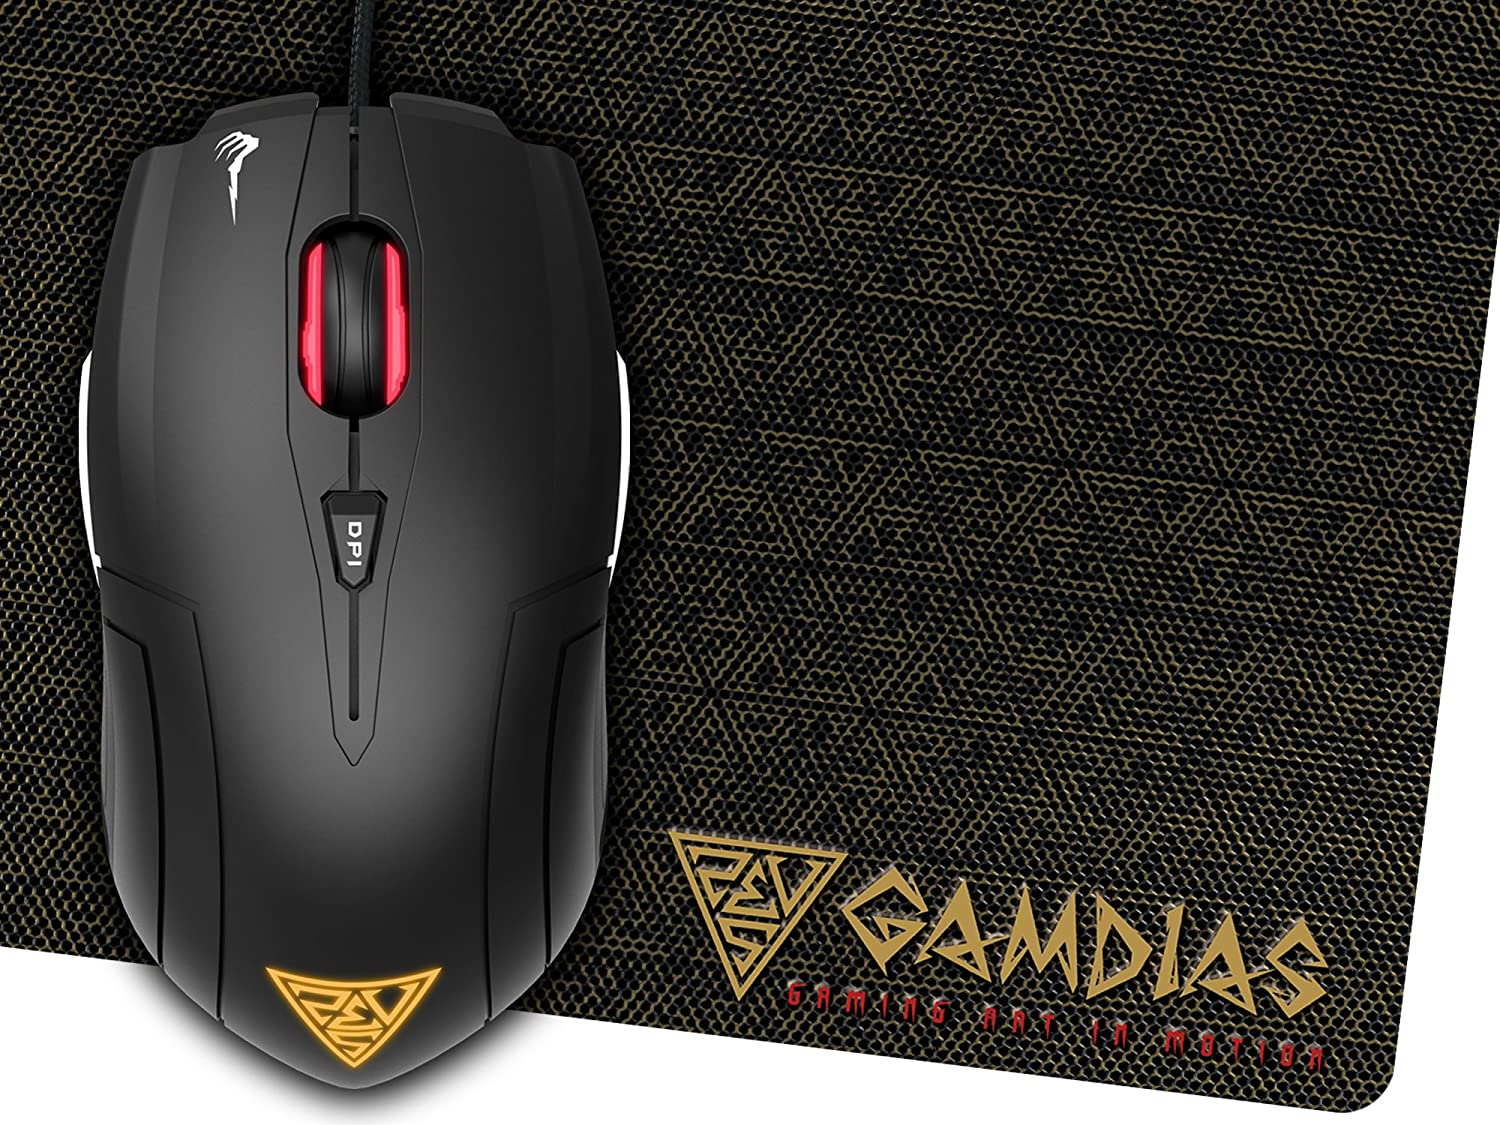 Buy Gamdias Demeter E1 3200dpi Gaming Mouse With Hp M100 Pad Online At Low Prices In India Reviews Ratings